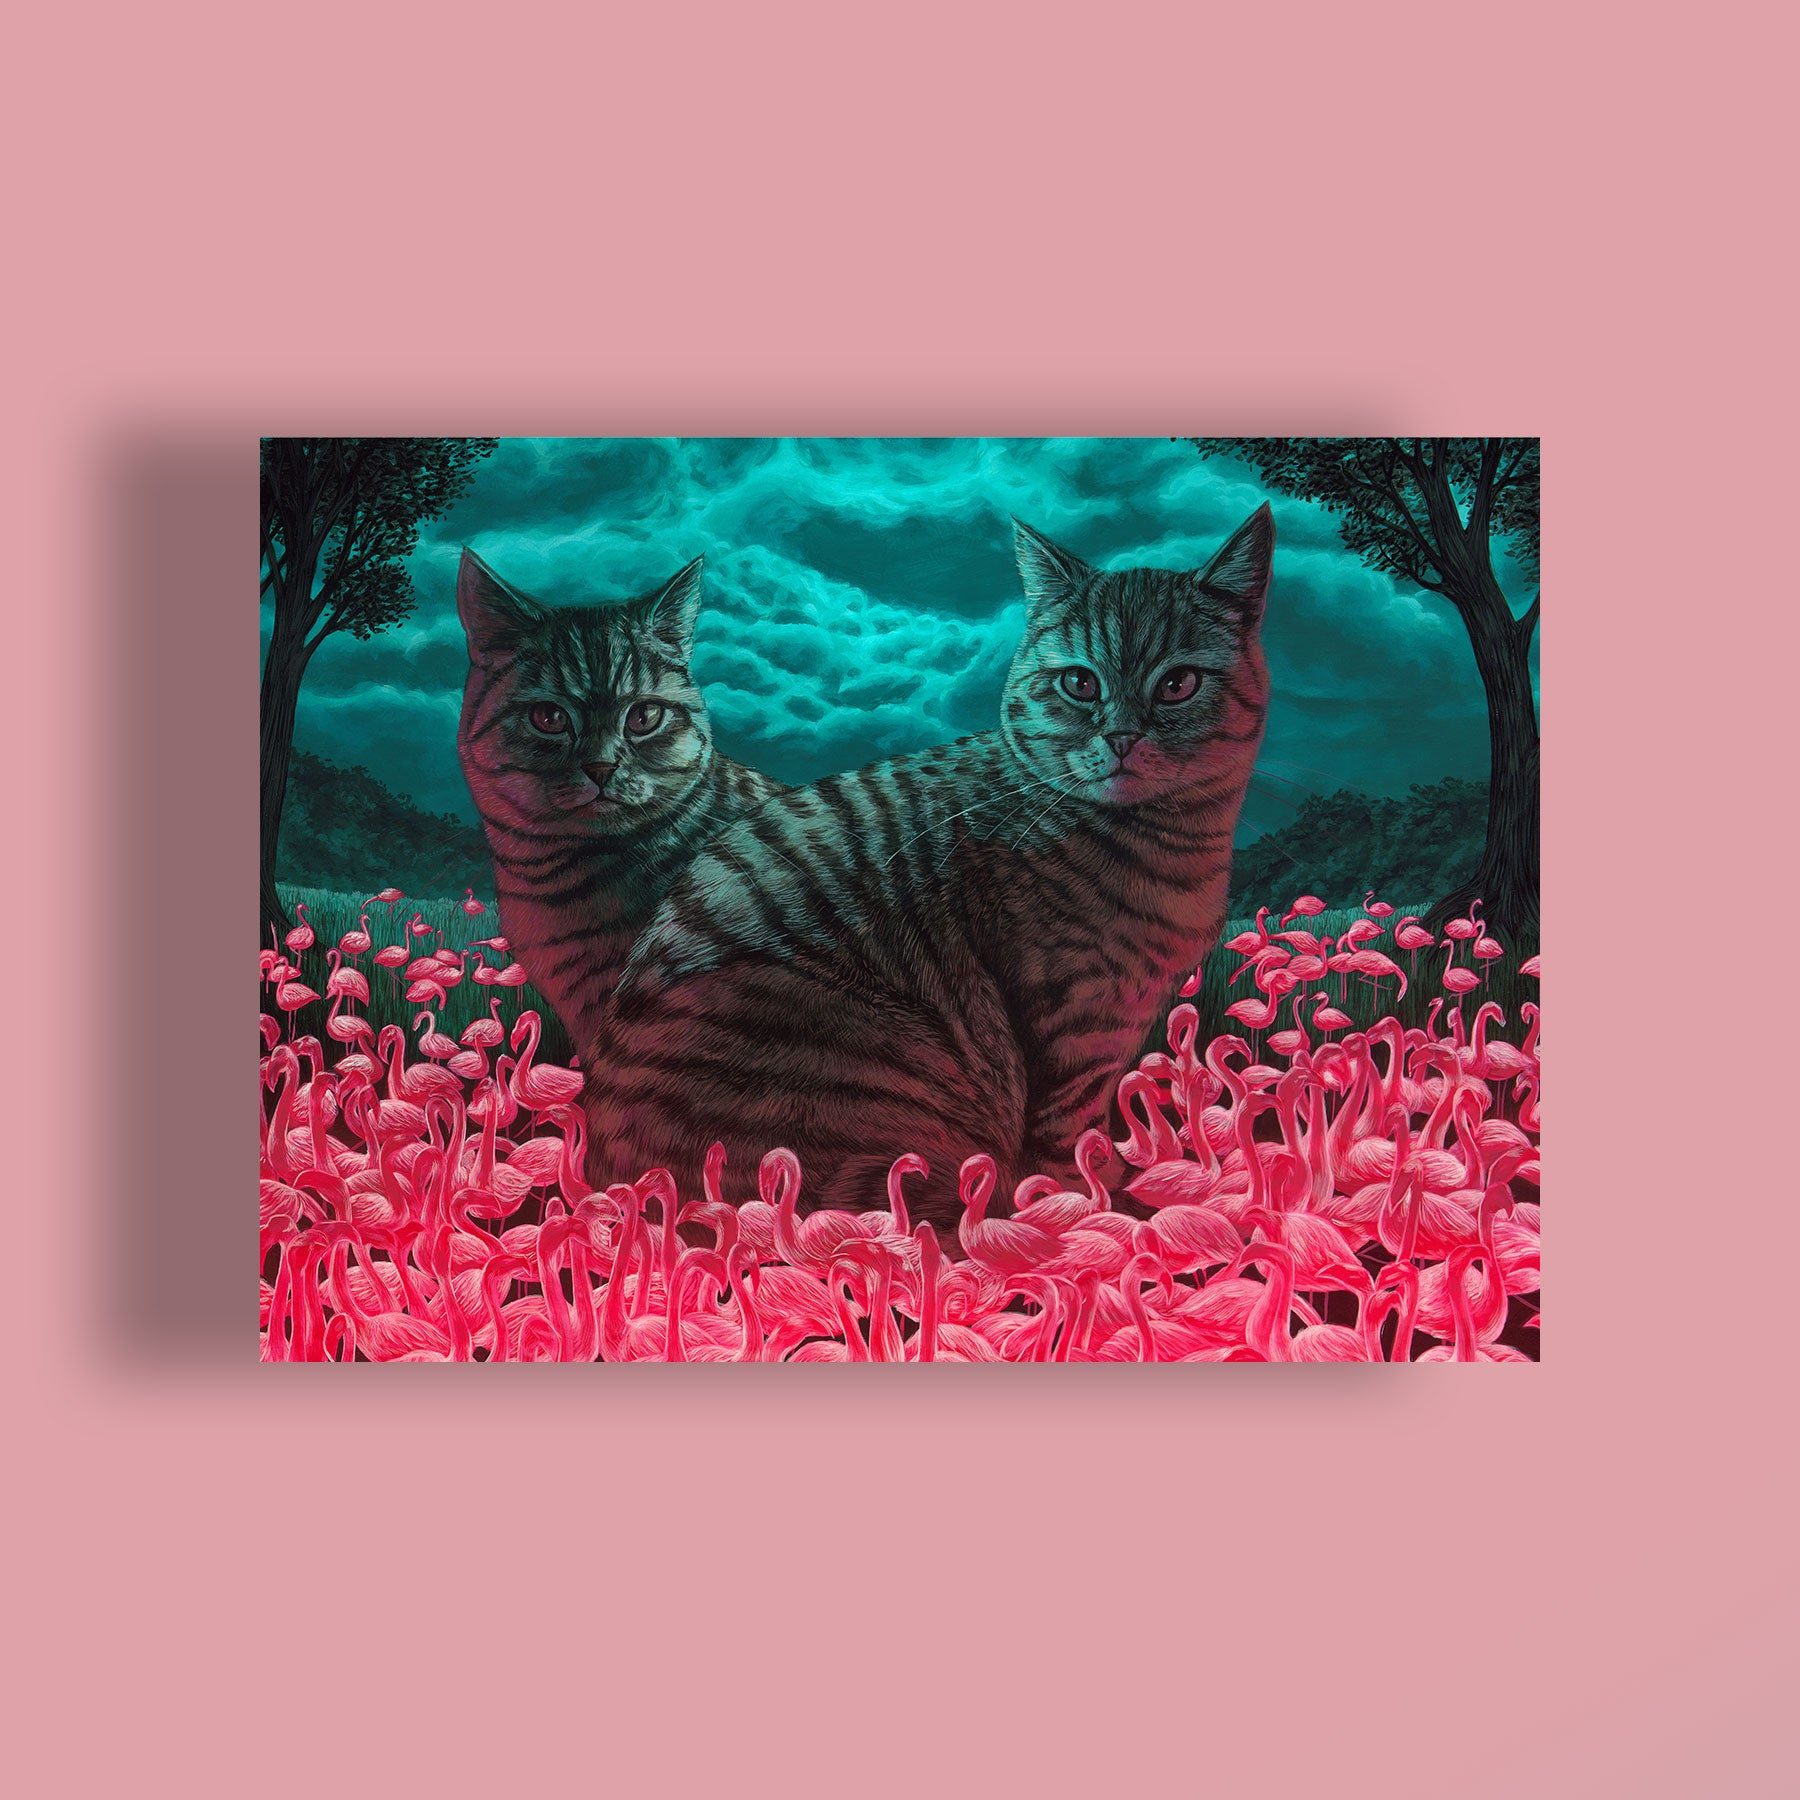 Cat Jigsaw puzzle by Casey Weldon